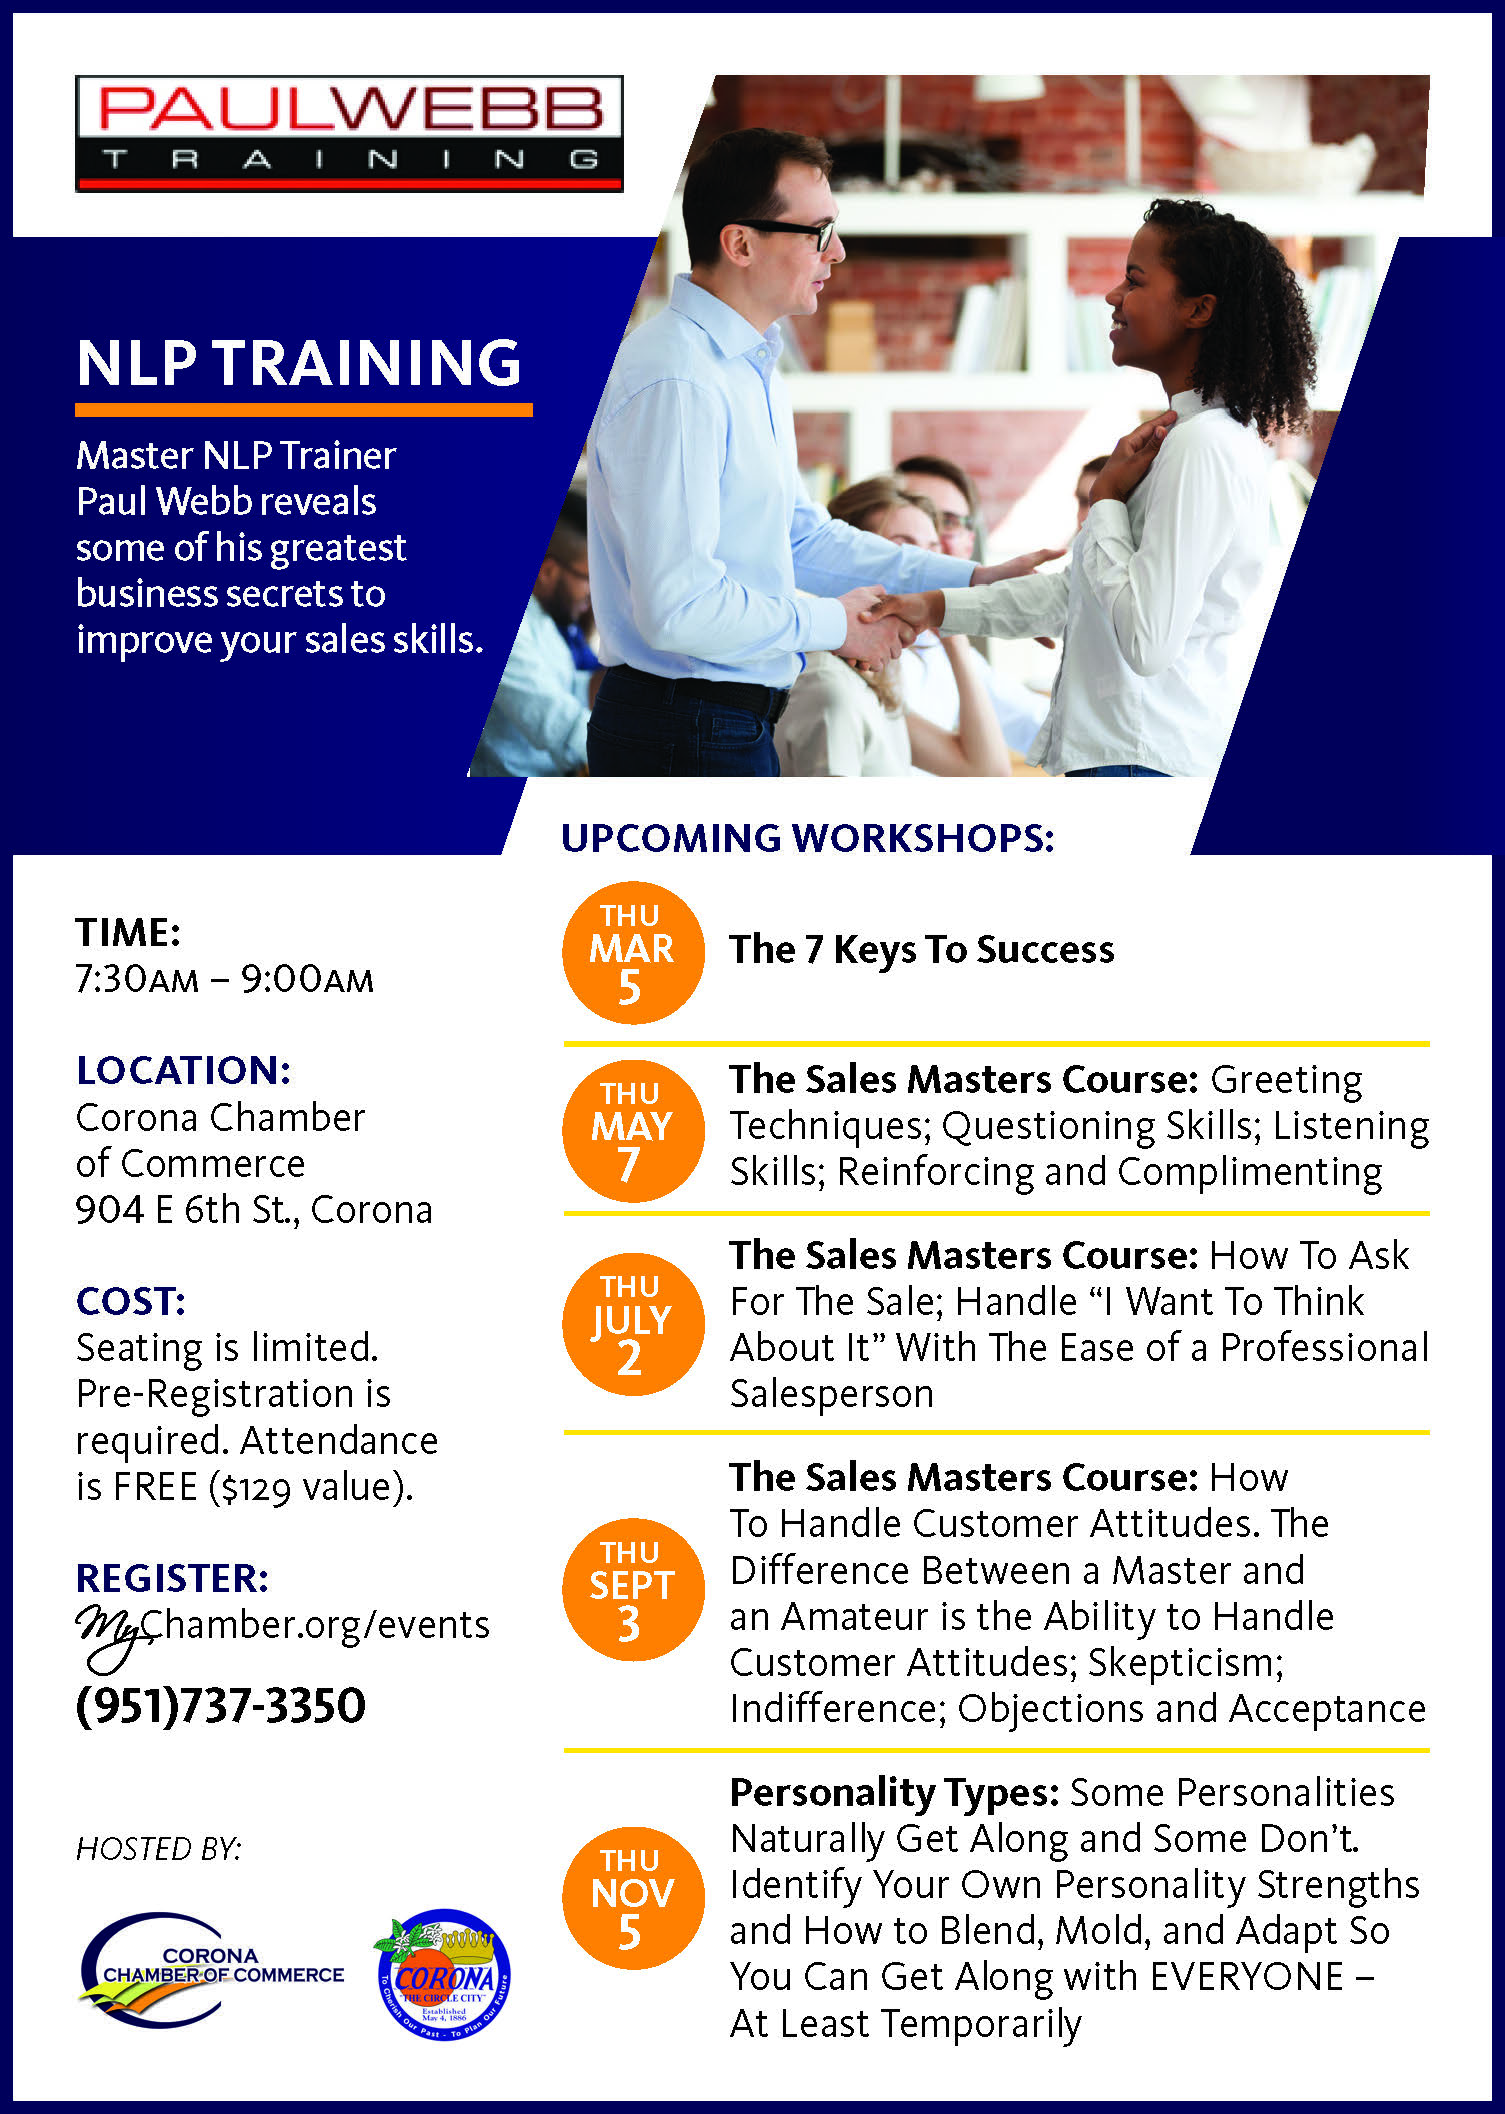 Paul Webb seminars, NLP Series Ad for CBN